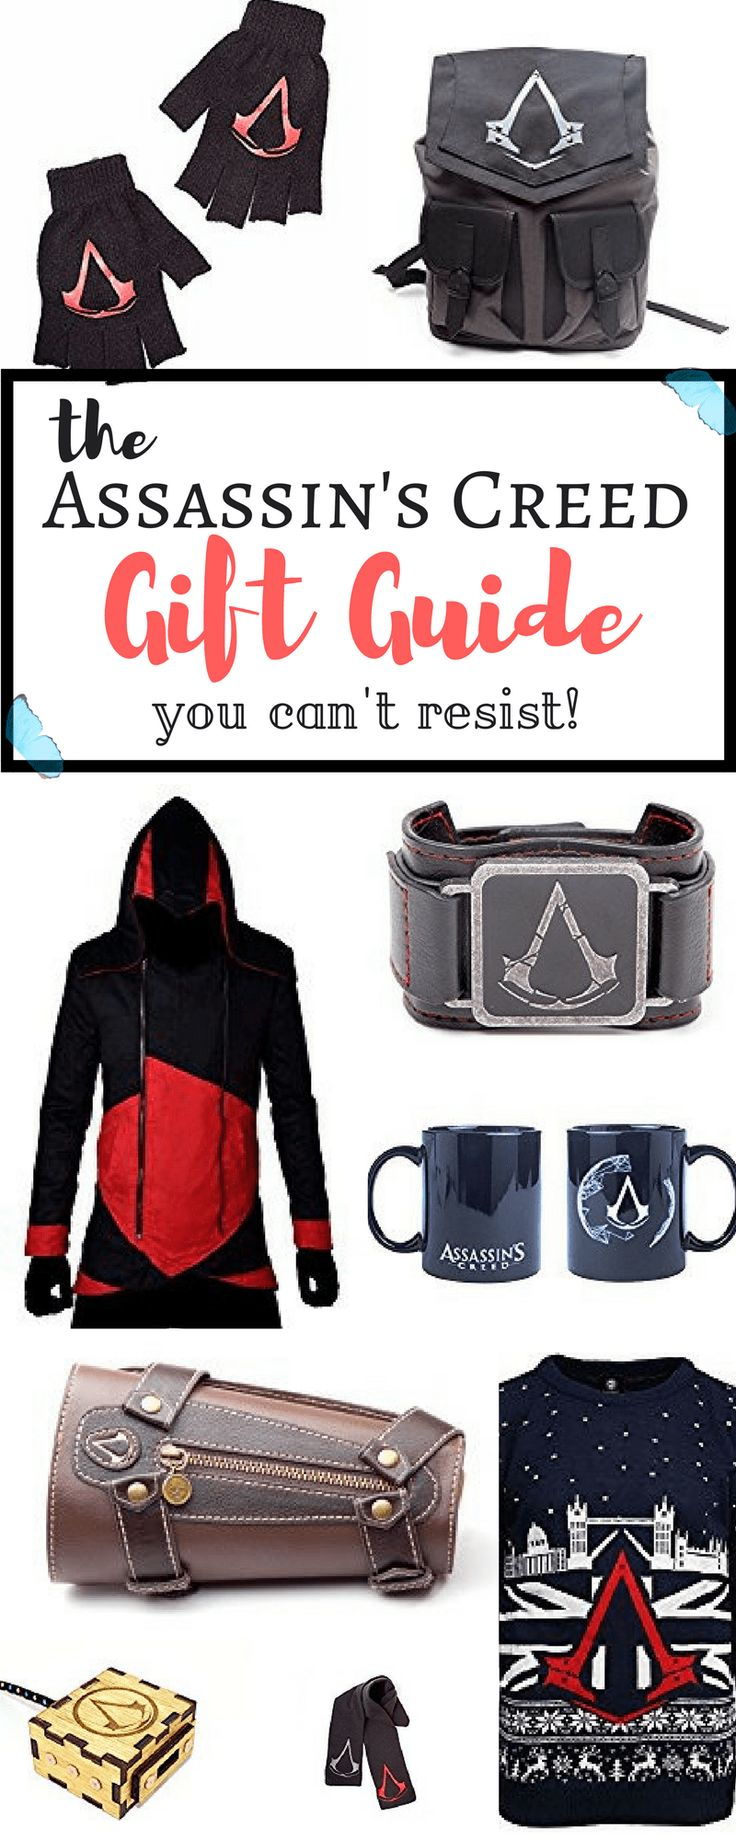 With the new release of Assassin's Creed: Origins, comes a new chapter of fun for the game series lovers (us included!), and with Christmas coming up, we were trying to find the coolest, and of course, practical stuff out there for the guys and gals who just LOVE Assassin's Creed and everything about it.